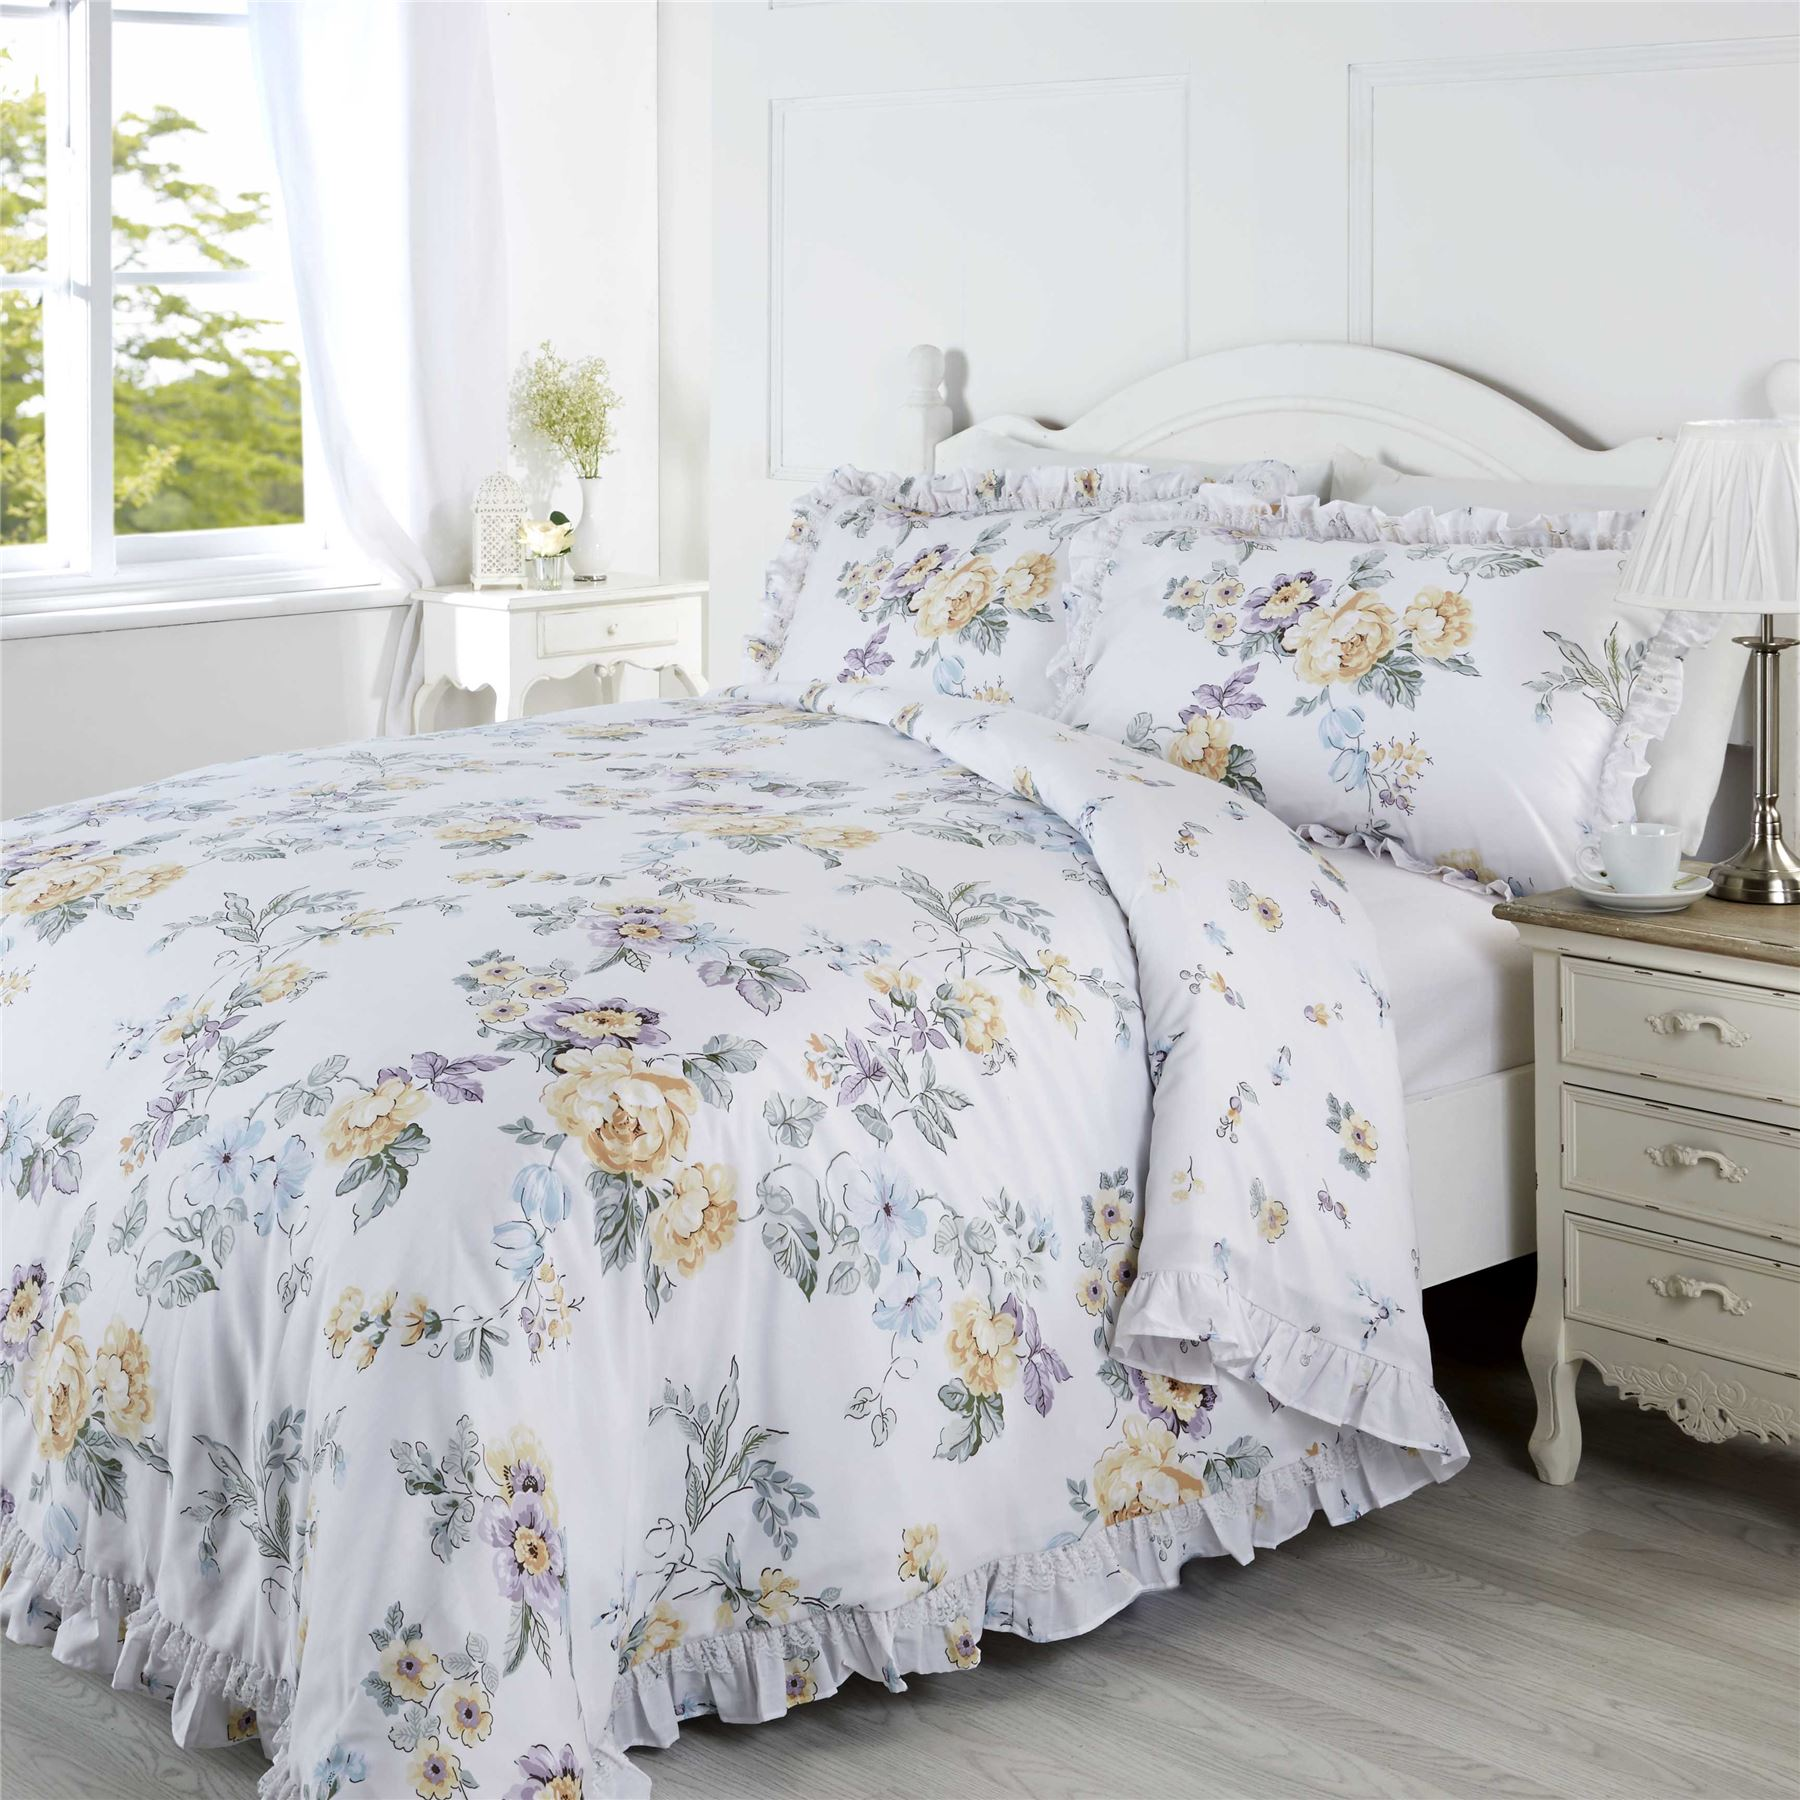 how to put on a king duvet cover